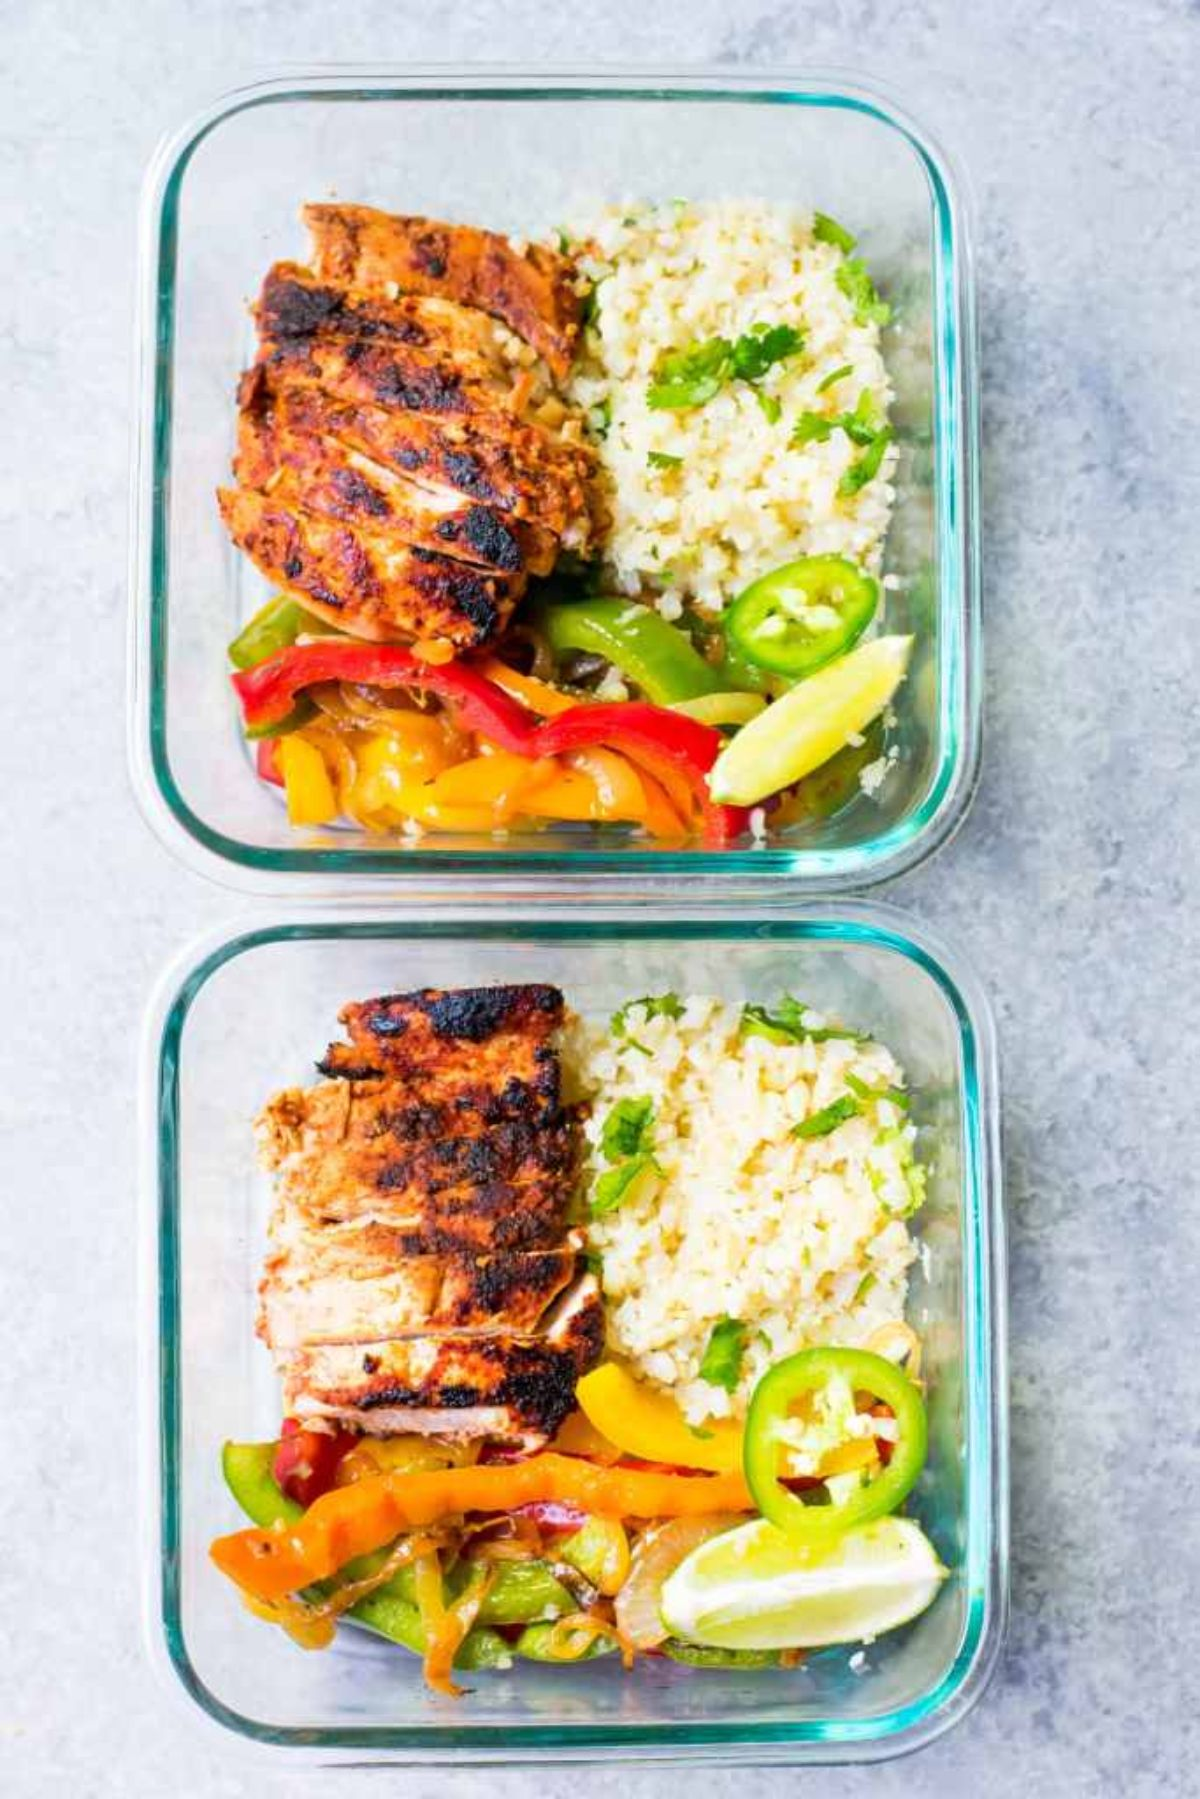 2 glass containers with chicken, cauliflower rice, and stir fried vegetables